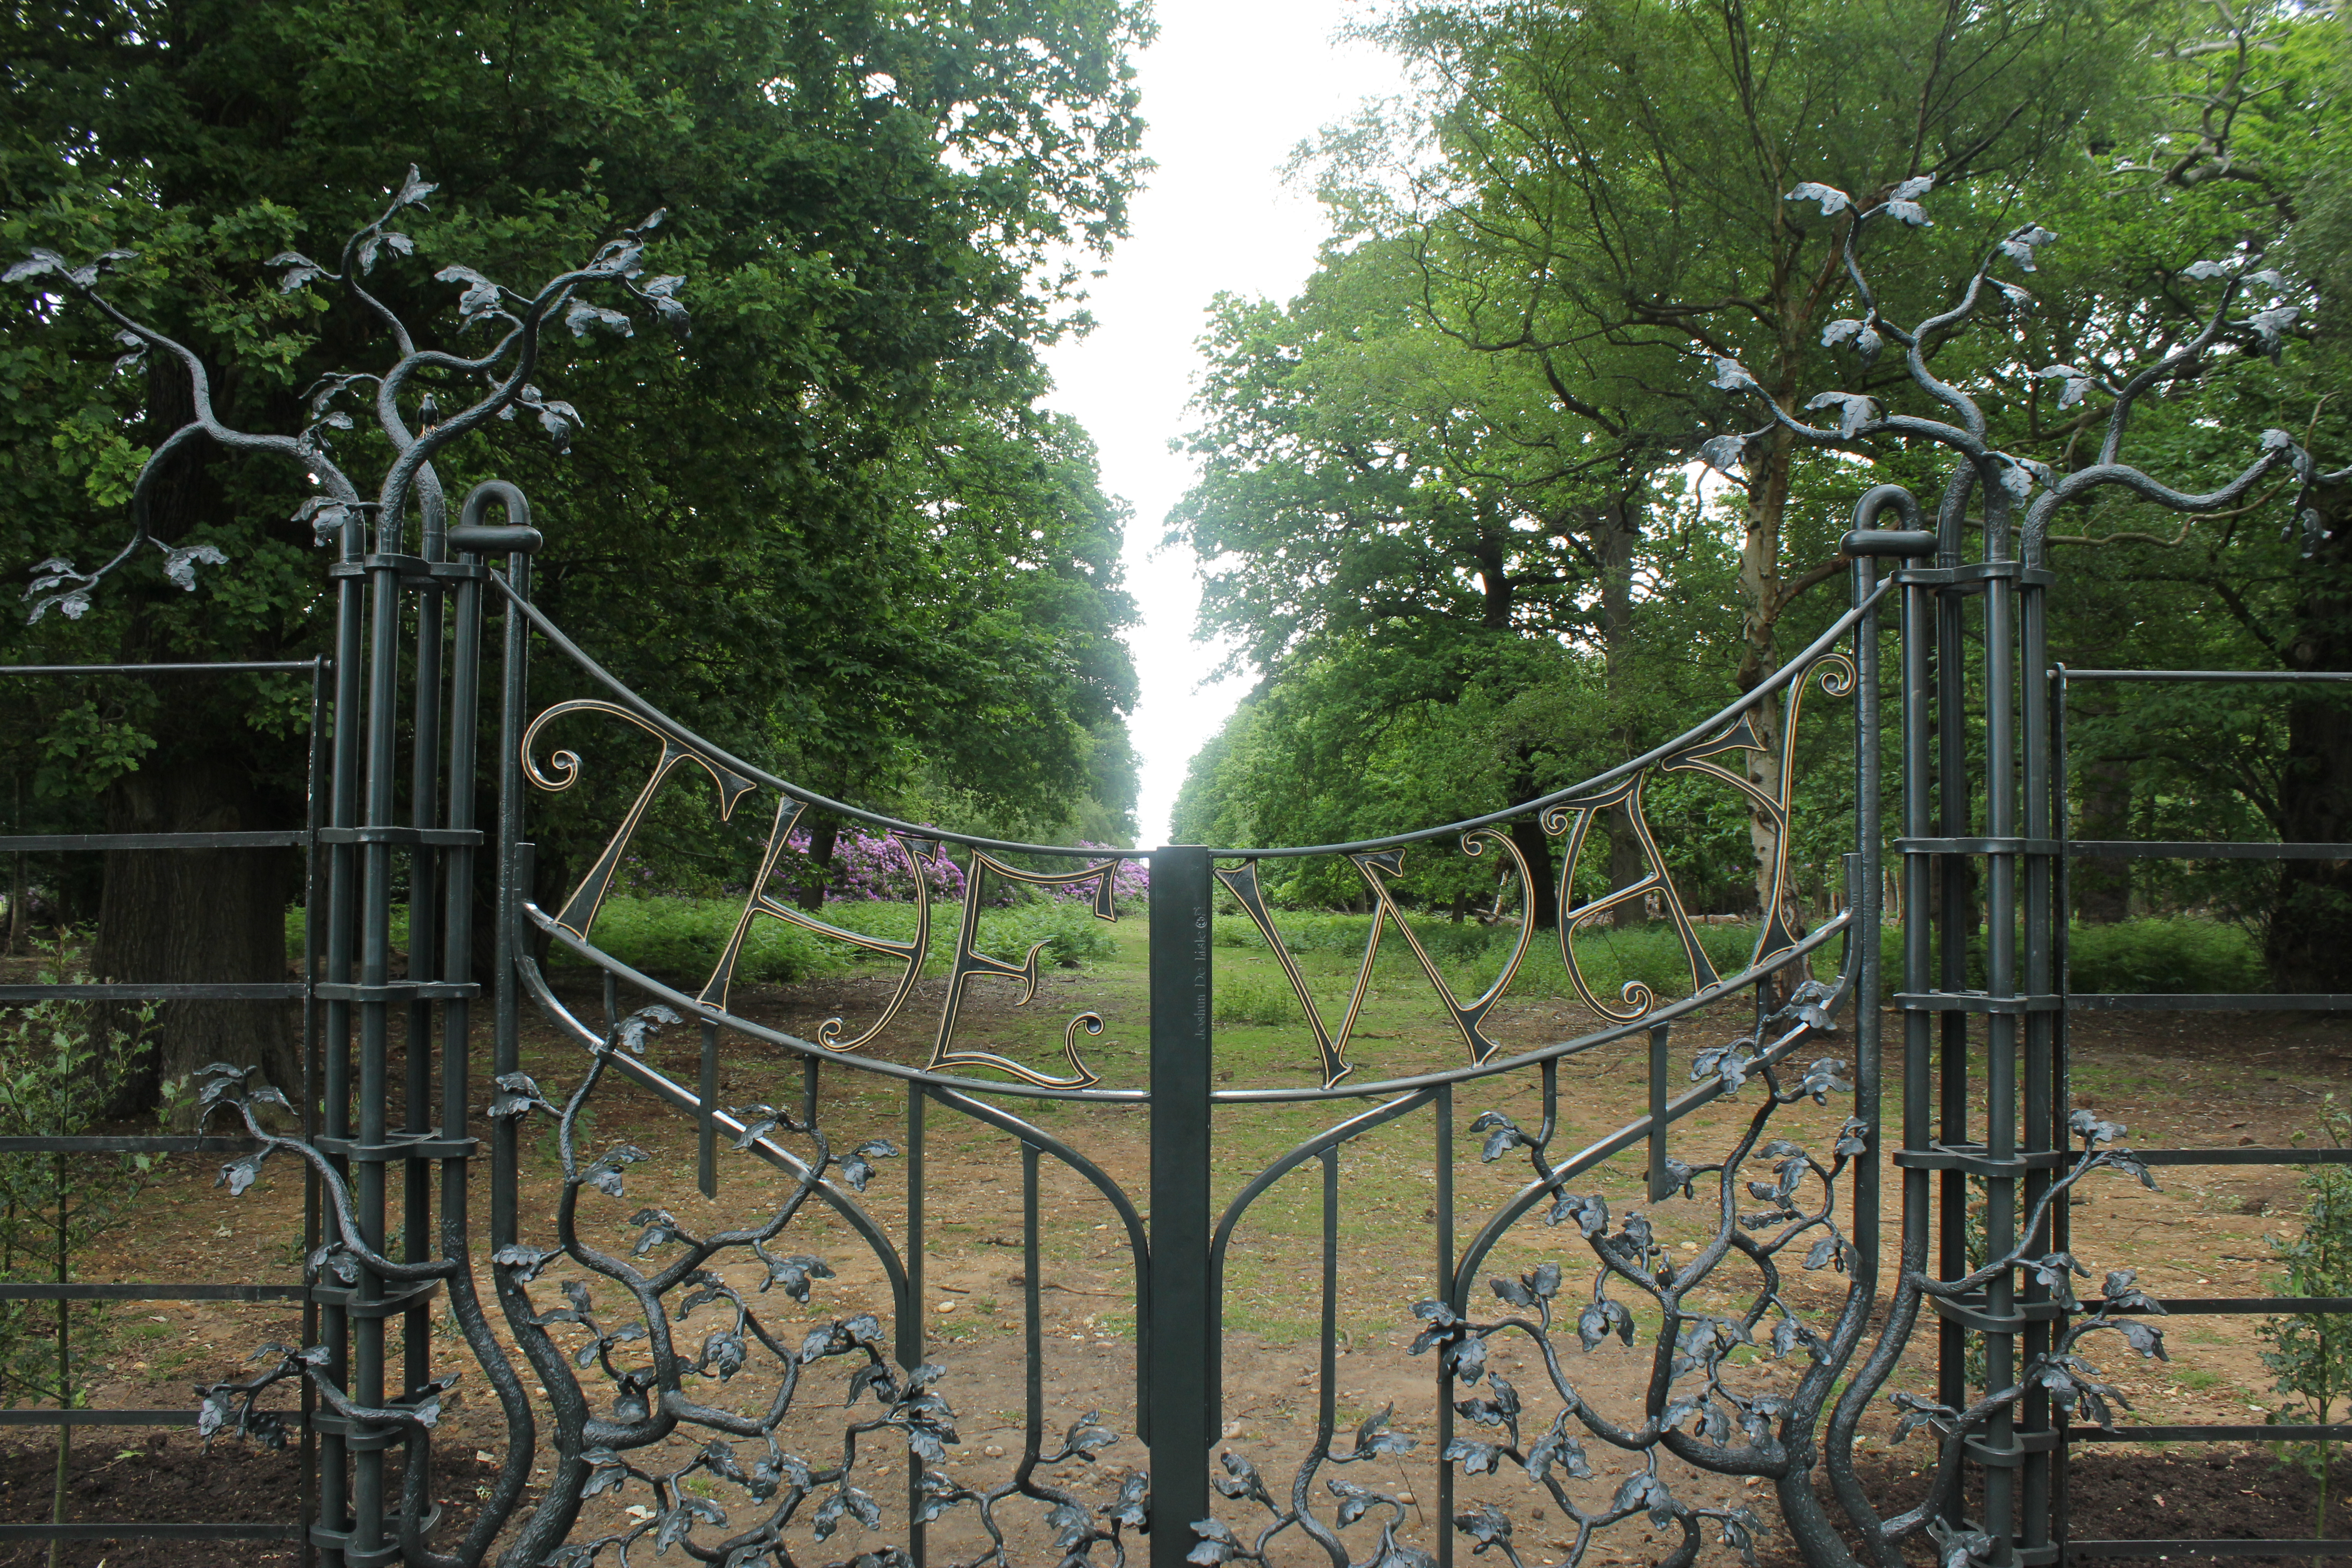 Richmond Park gates 'The Way' added to the historic vista 10-mile vista from the park to St Paul's Cathedral to mark the cathedral's tercentenary